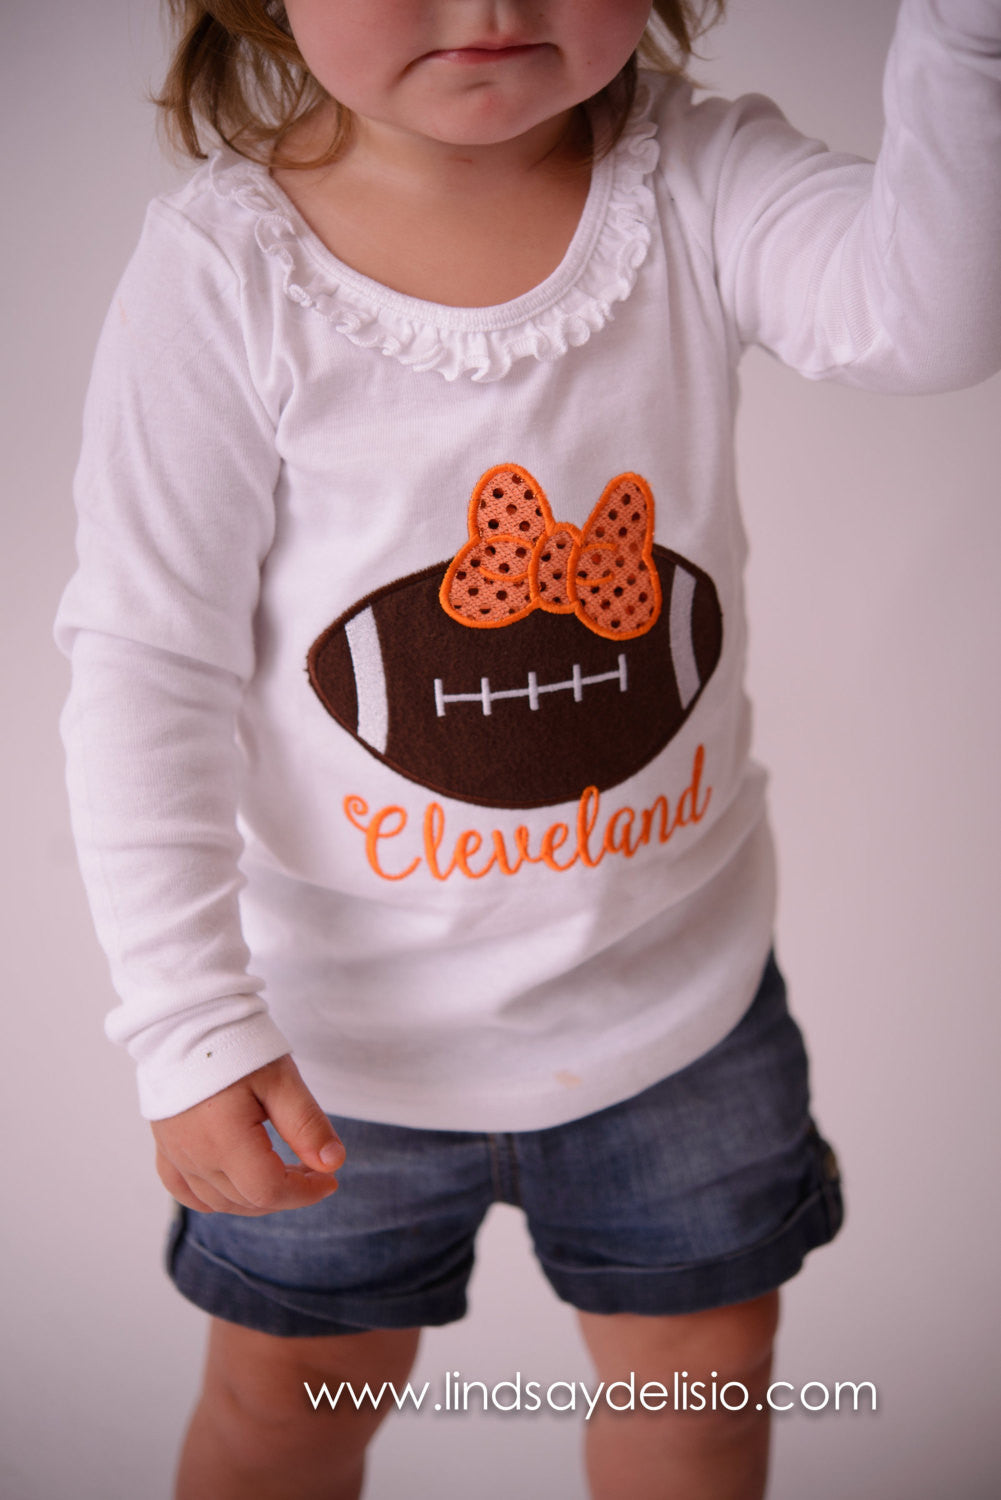 separation shoes cefd8 20b2b Cleveland Browns Baby or Girls Football Shirt or Bodysuit -- Sizes 3 Months  to XL 14